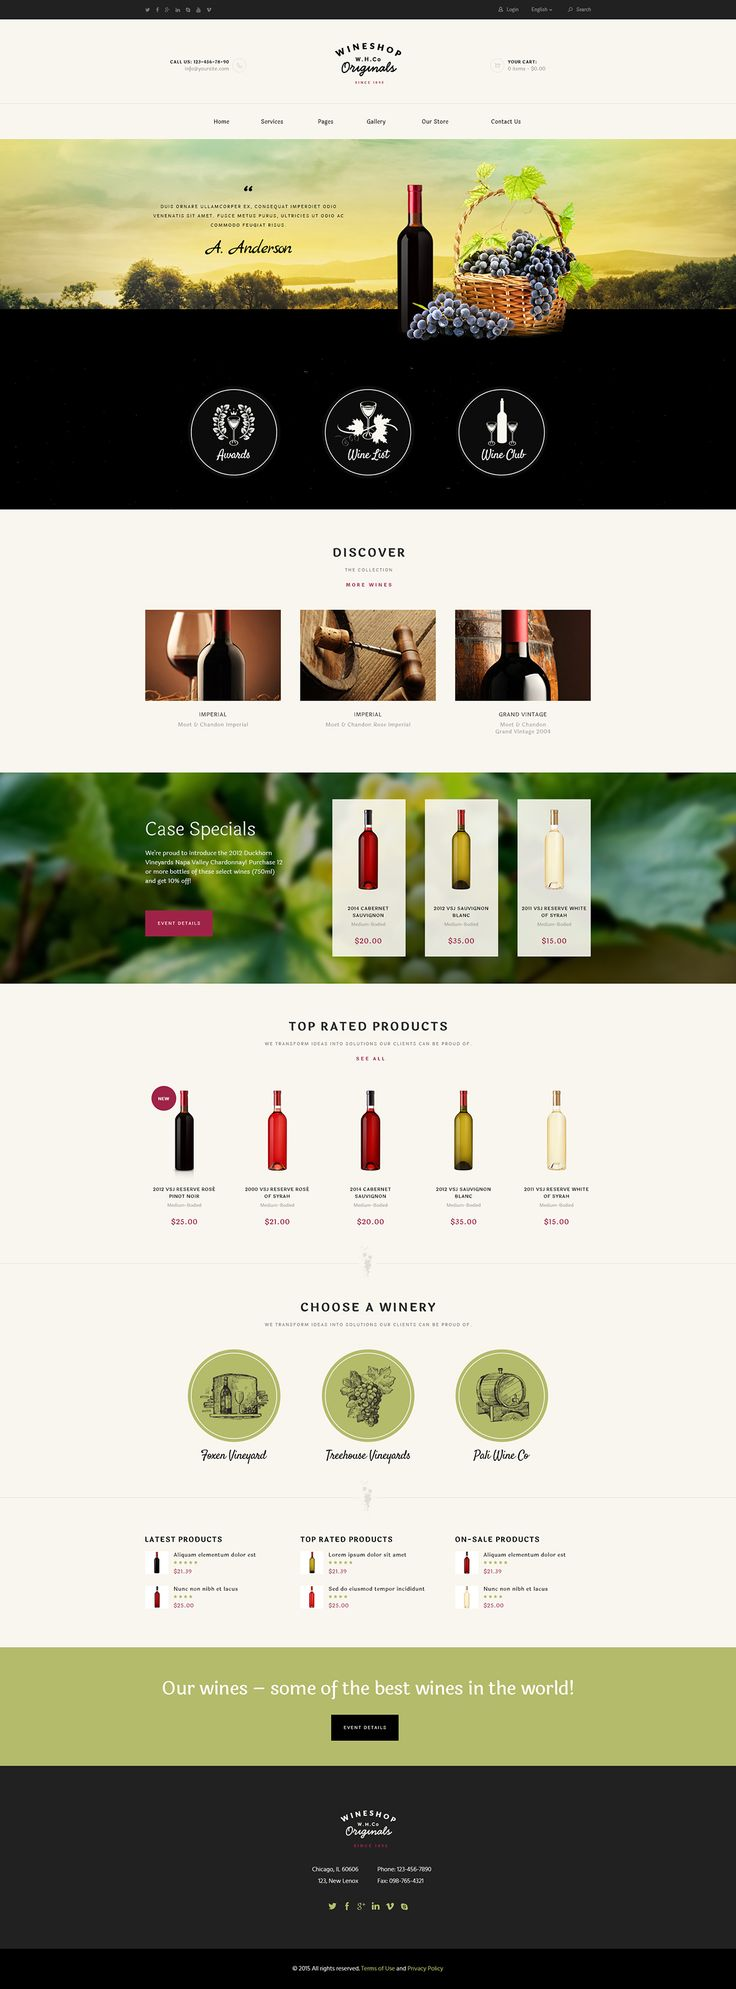 WineShop – is WordPress based online store to sell wine, food or grocery. It is good to sell organic produce, and it can also fit for winery or farm.